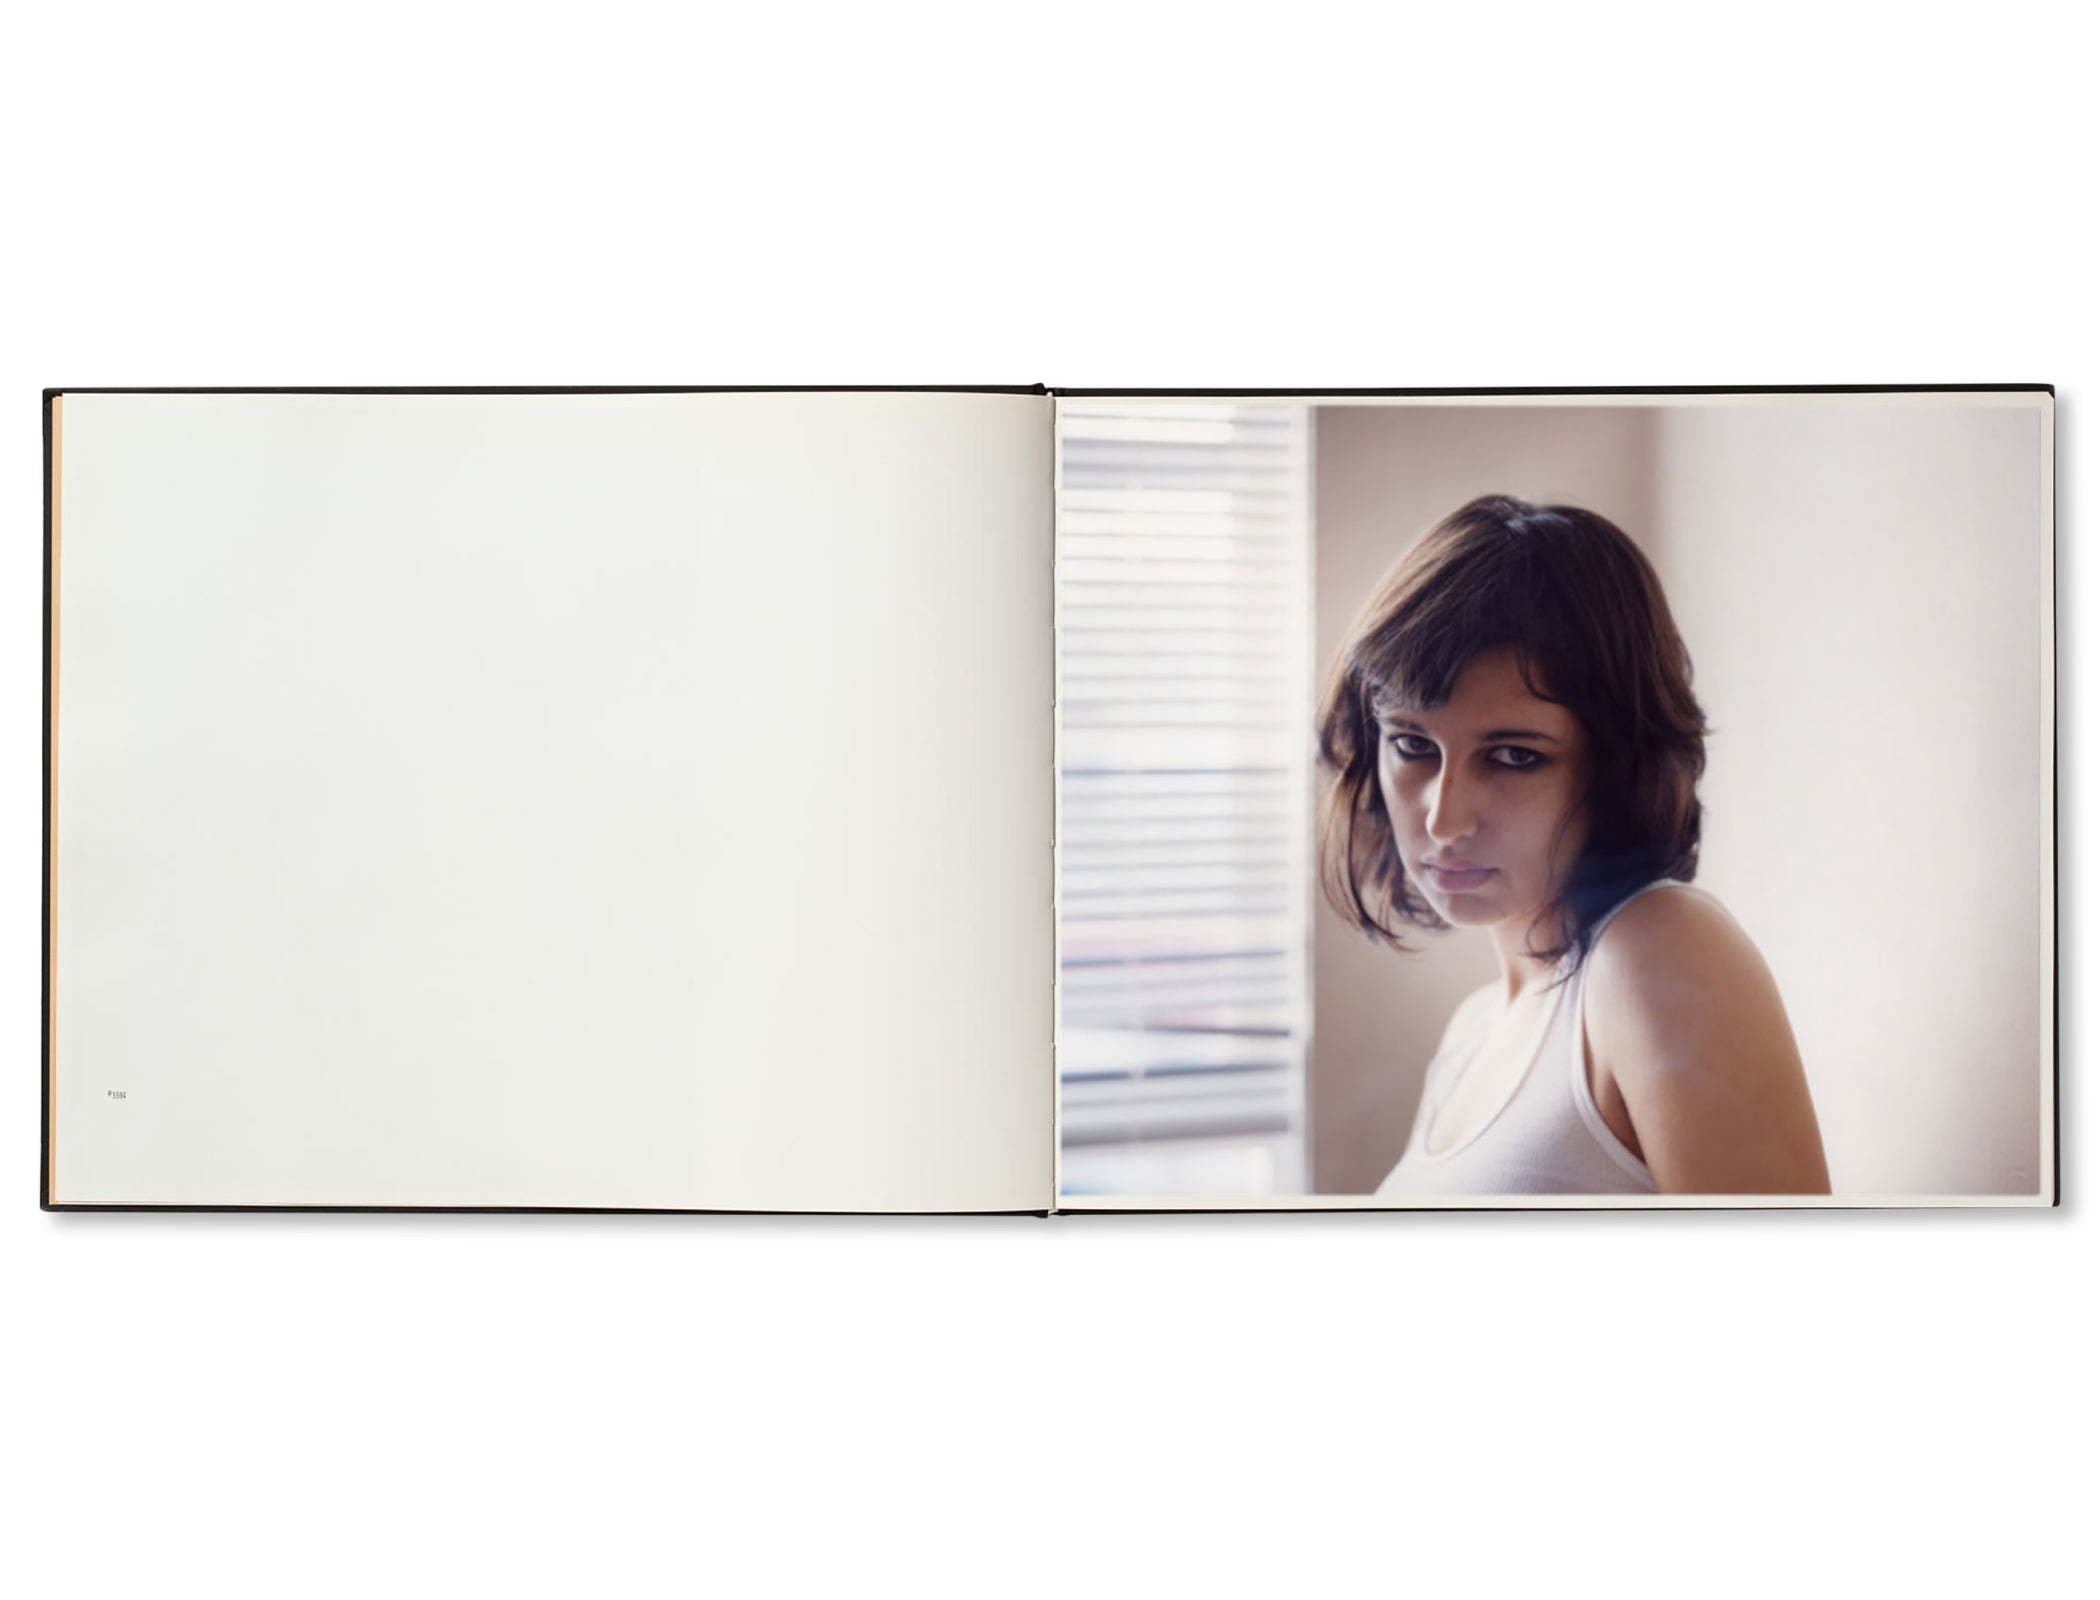 BETWEEN THE TWO by Todd Hido [FIRST EDITION]